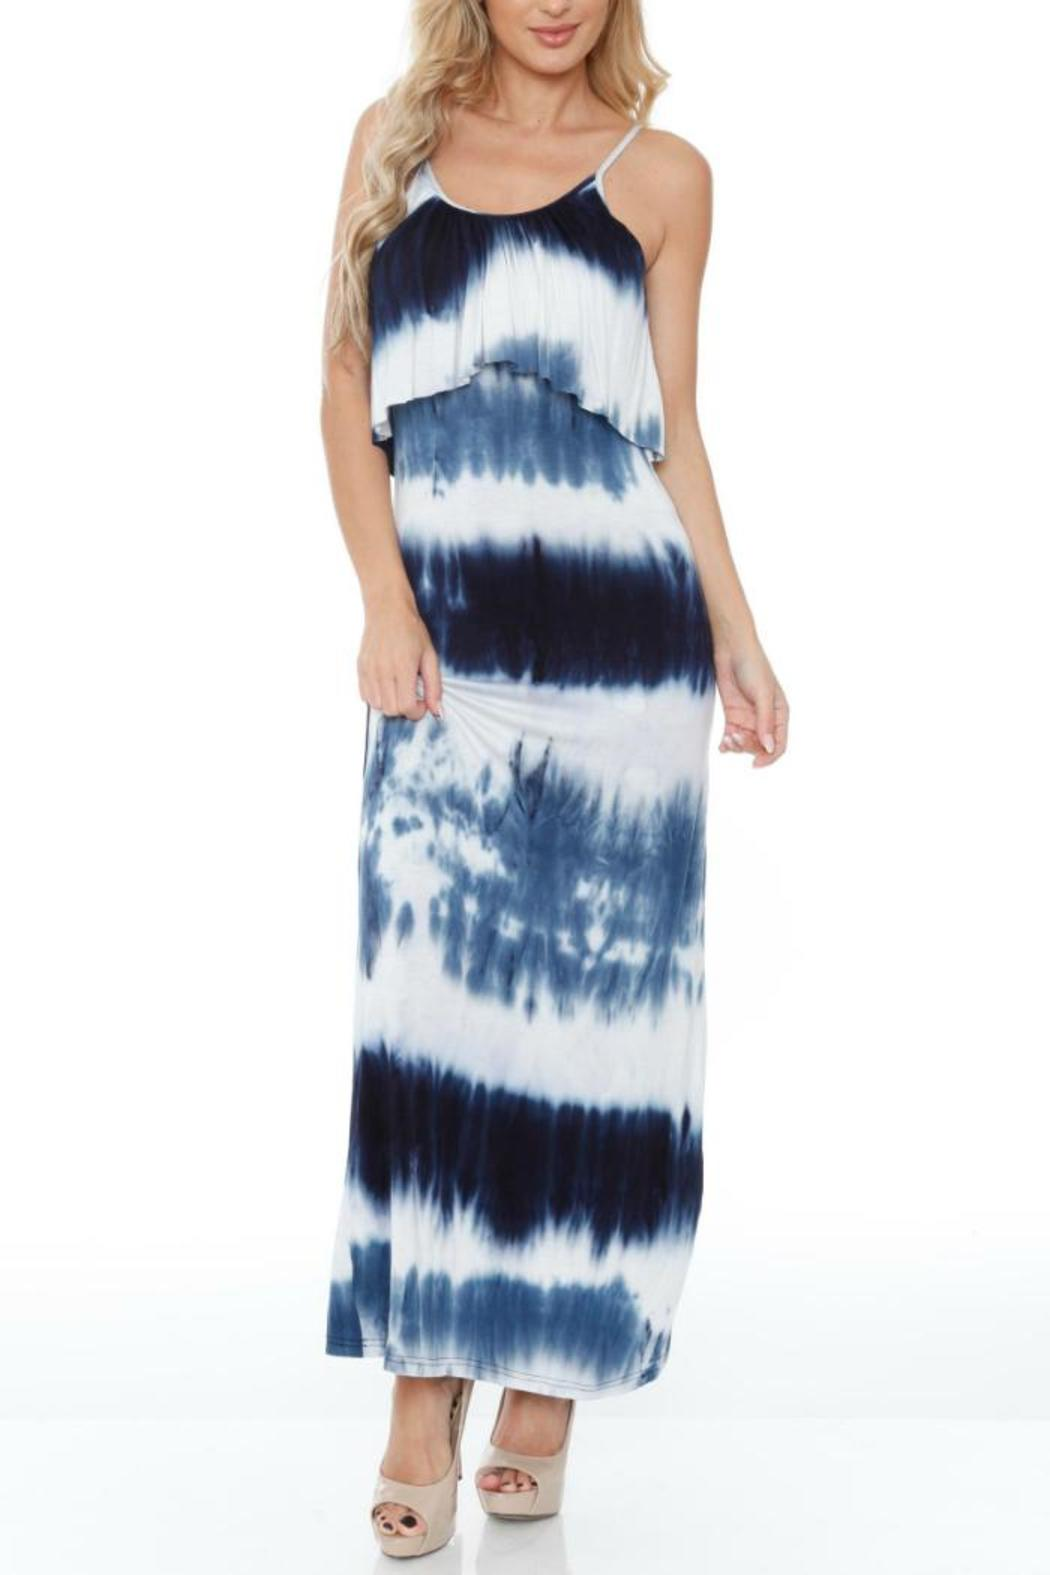 GLITZ & GLAM Navy Tie Dye Dress - Main Image